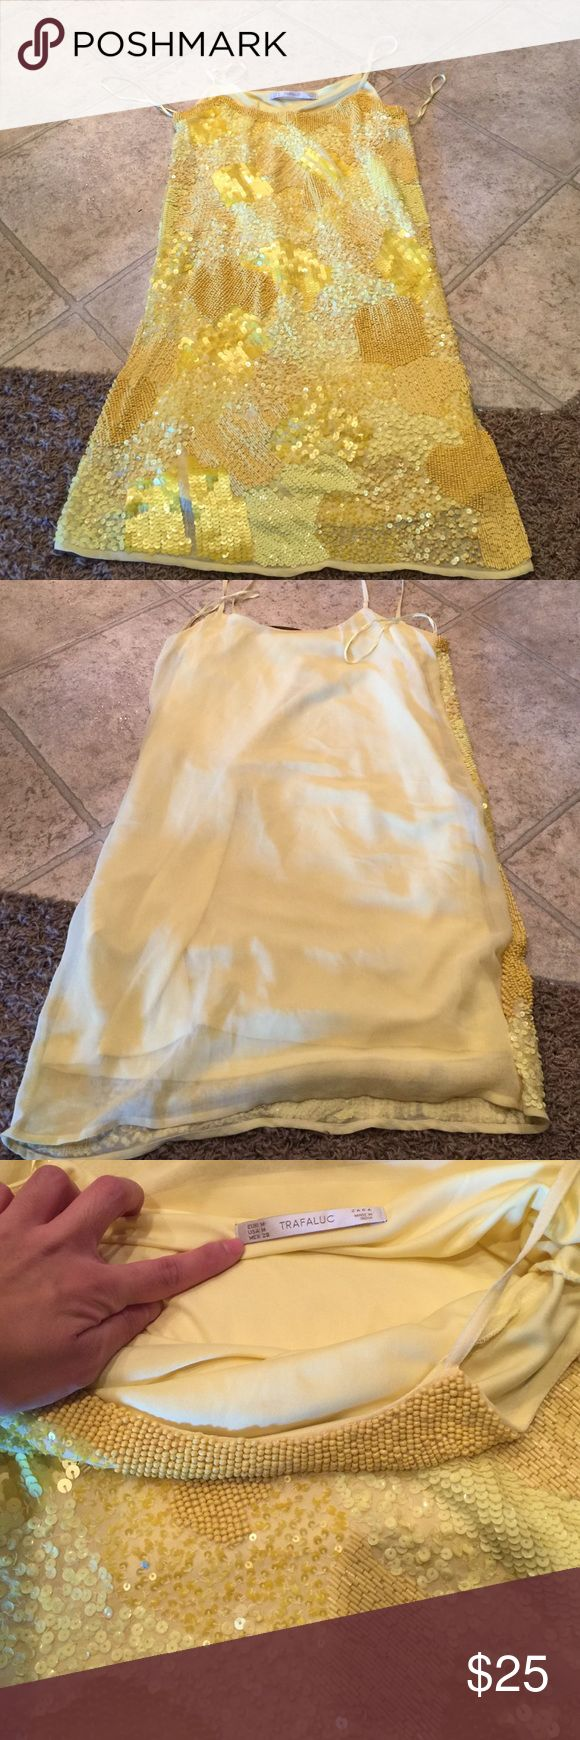 Zara trafaluc yellow sequin dress. So cute sold out . The dress is heavy and great quality . No zipper you slip on . Size medium or for a size small with a oversized look. I'm a size large in forever 21 and I can squeeze into it.... like new worn once . No stains or rips. Zara Dresses Mini